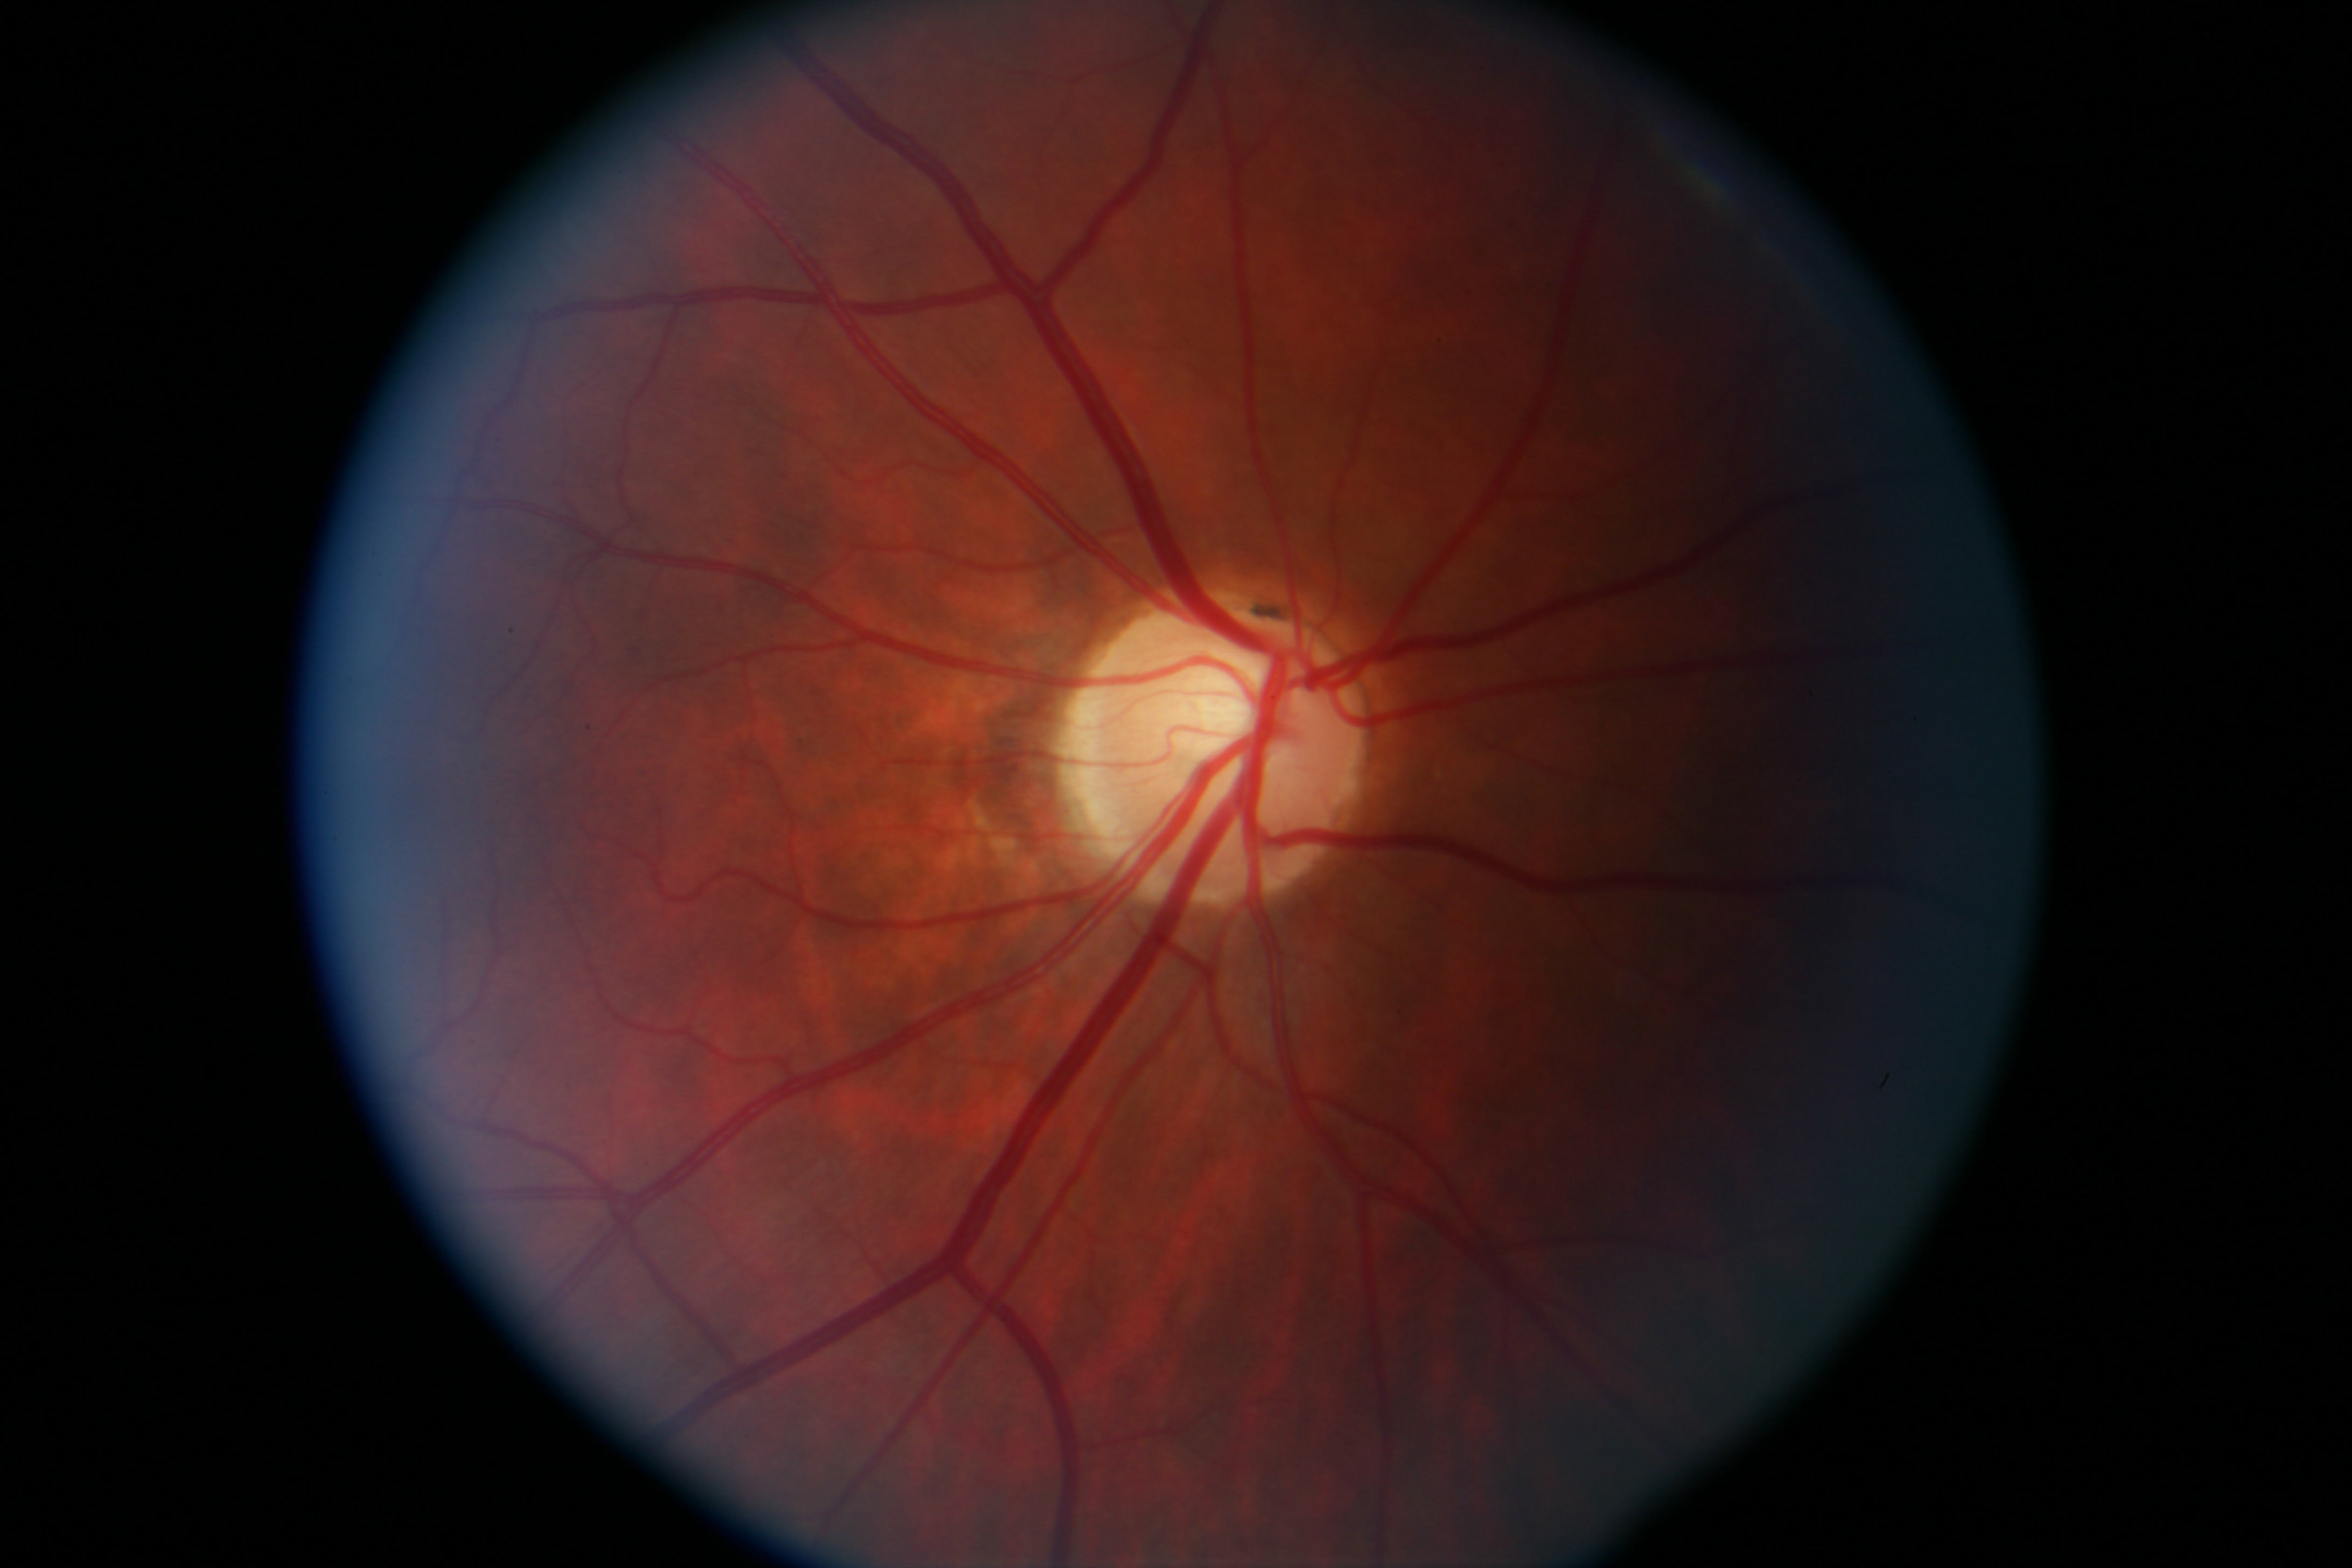 // <p>Right Eye Optic Nerve Pollar</p>